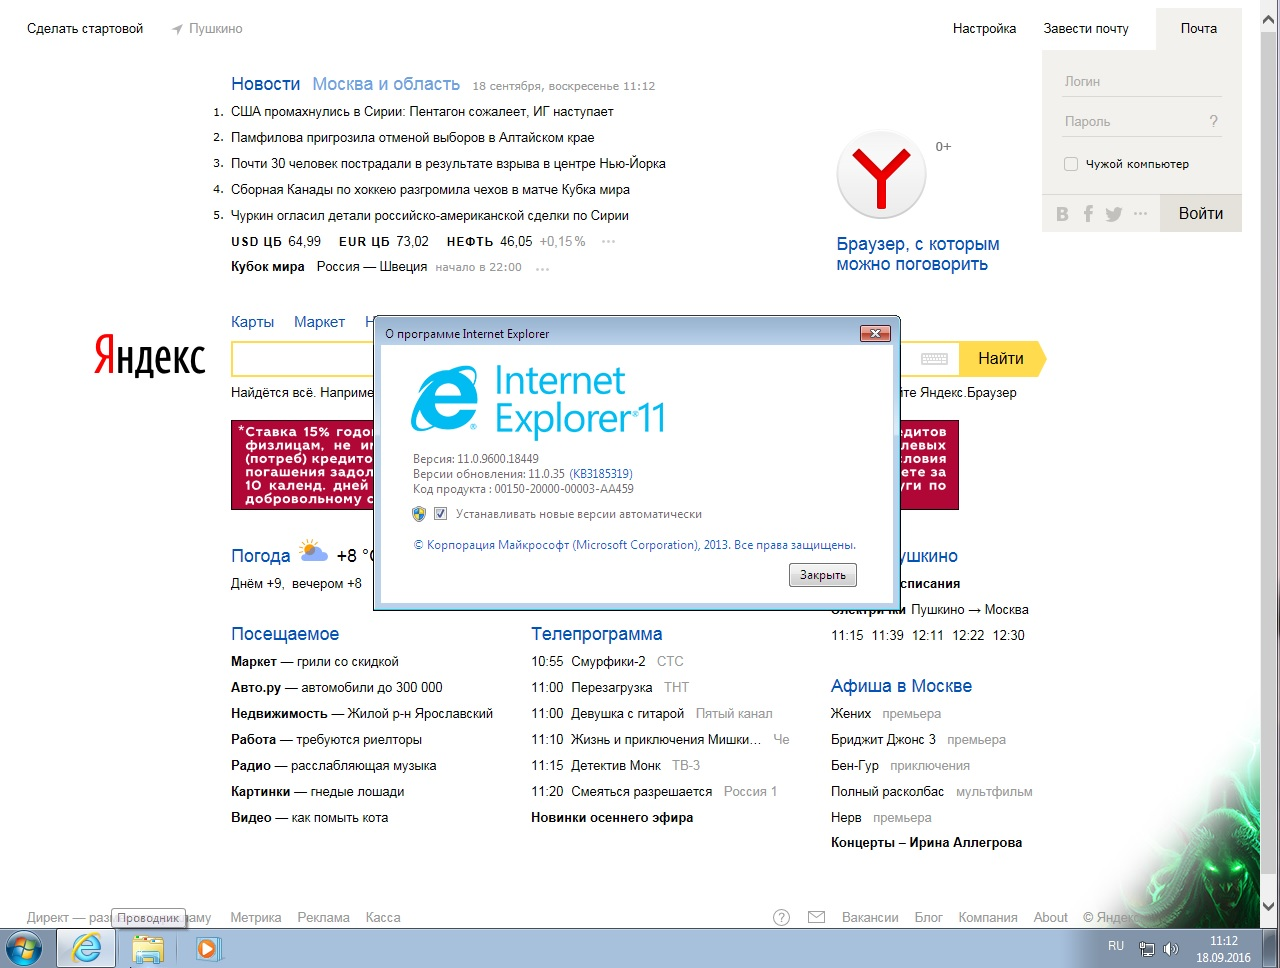 Windows 7 Professional SP1 & Intel USB 3.0 by AG 09.16 - «Windows»